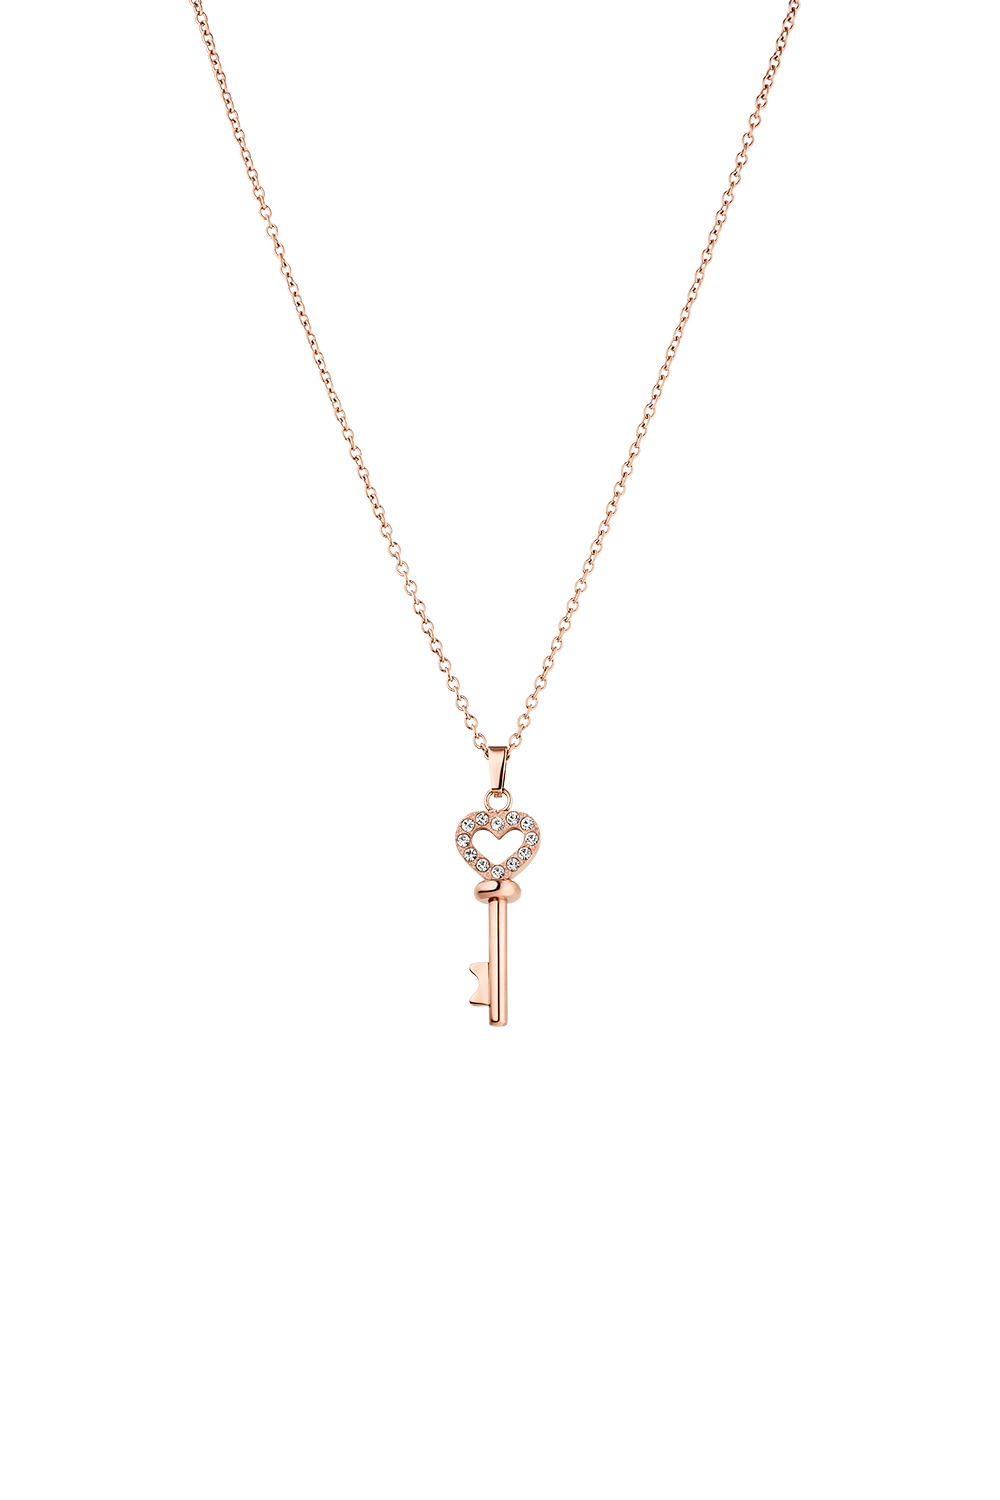 KEY NECKLACE ROSÉGOLD